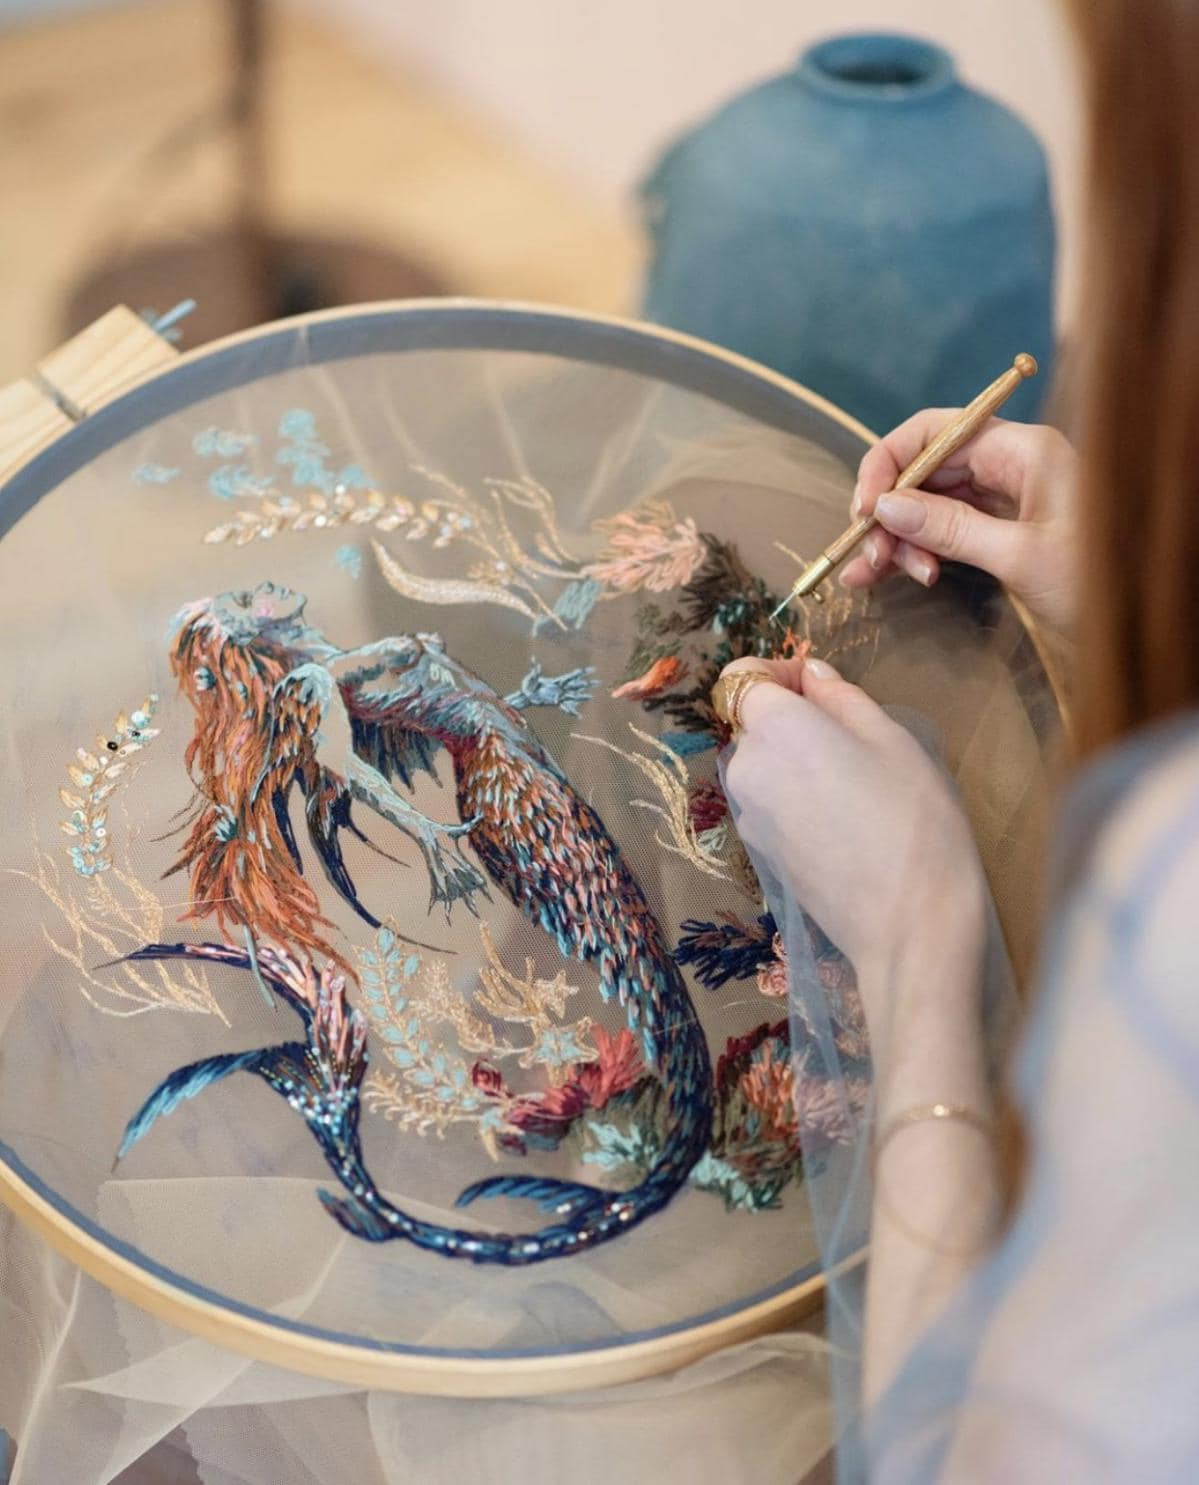 Mermaid embroidery by Kate Marchenko